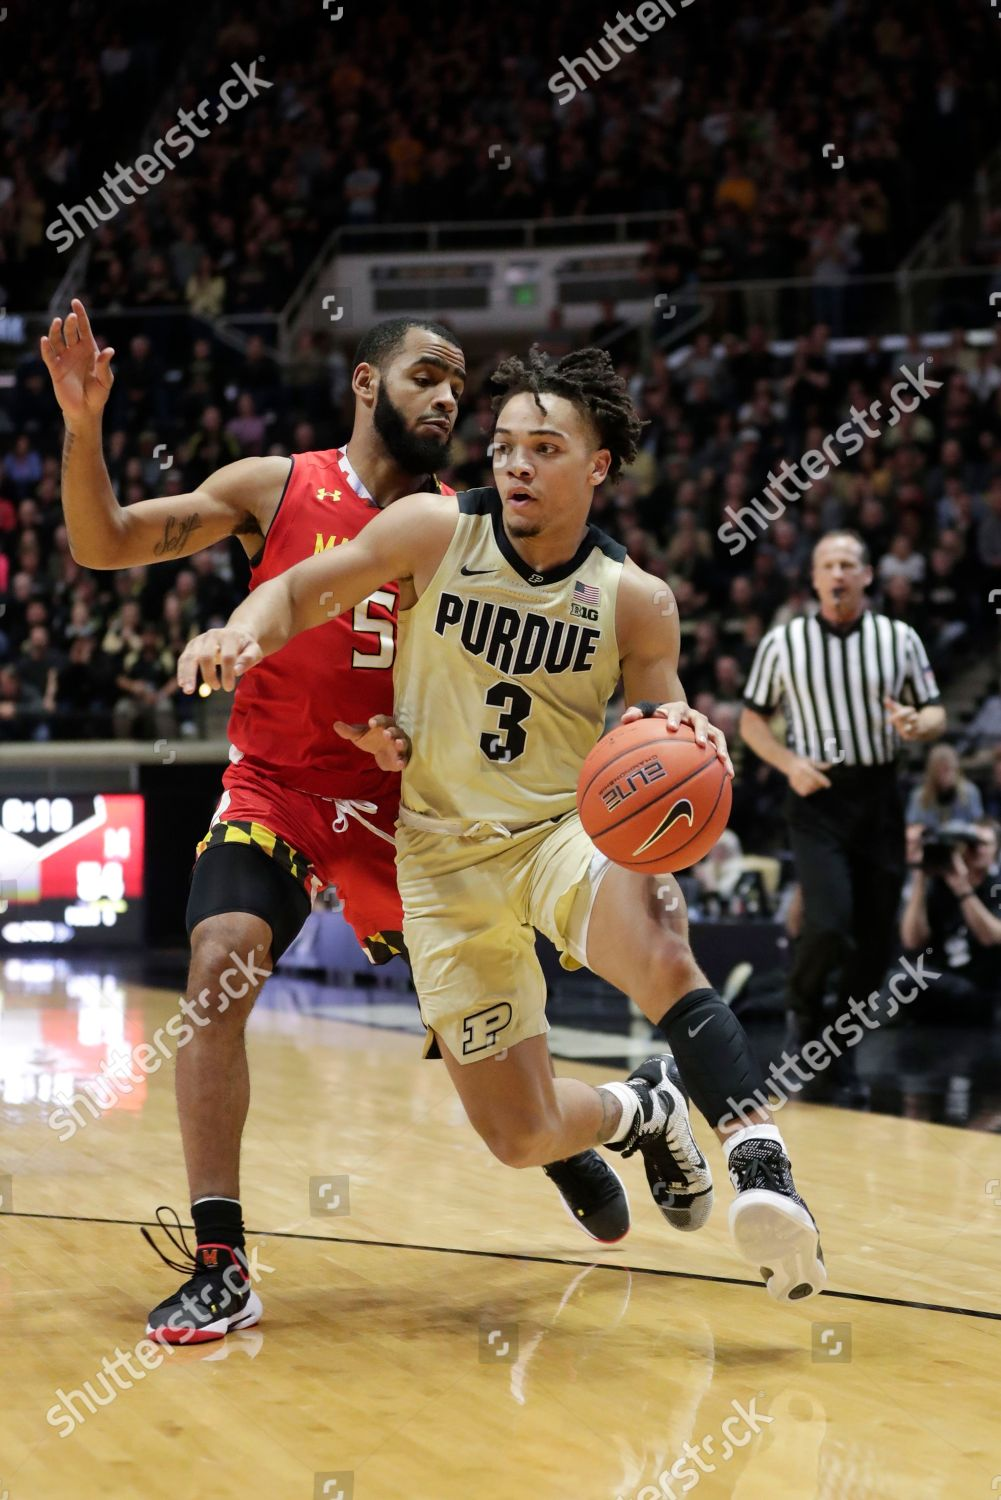 02b4a80c59c Purdue guard Carsen Edwards 3 drives on Editorial Stock Photo ...